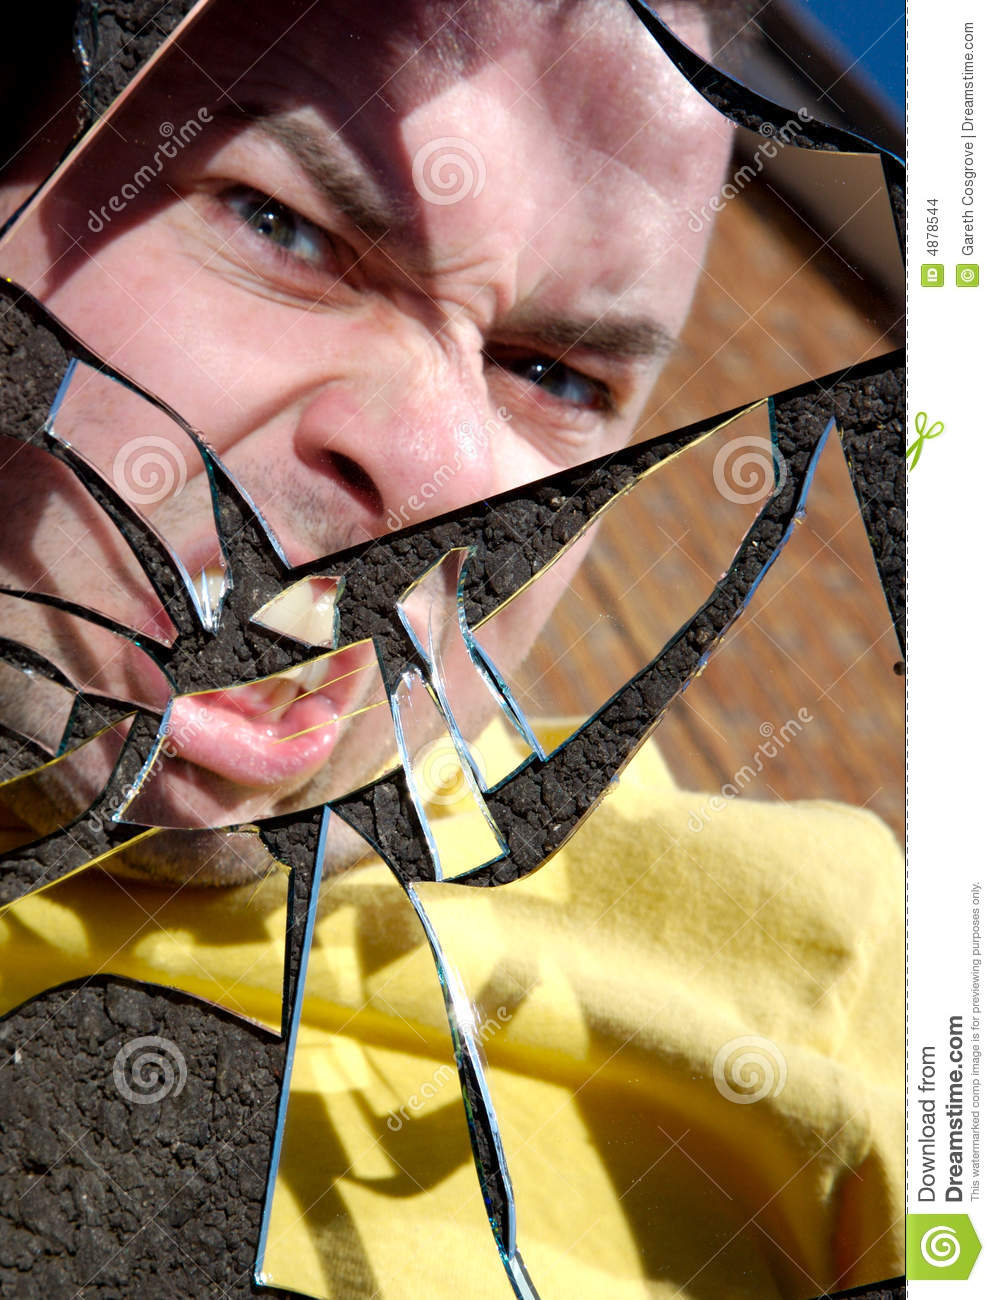 Shattered Anger Stock Images - Image: 4878544